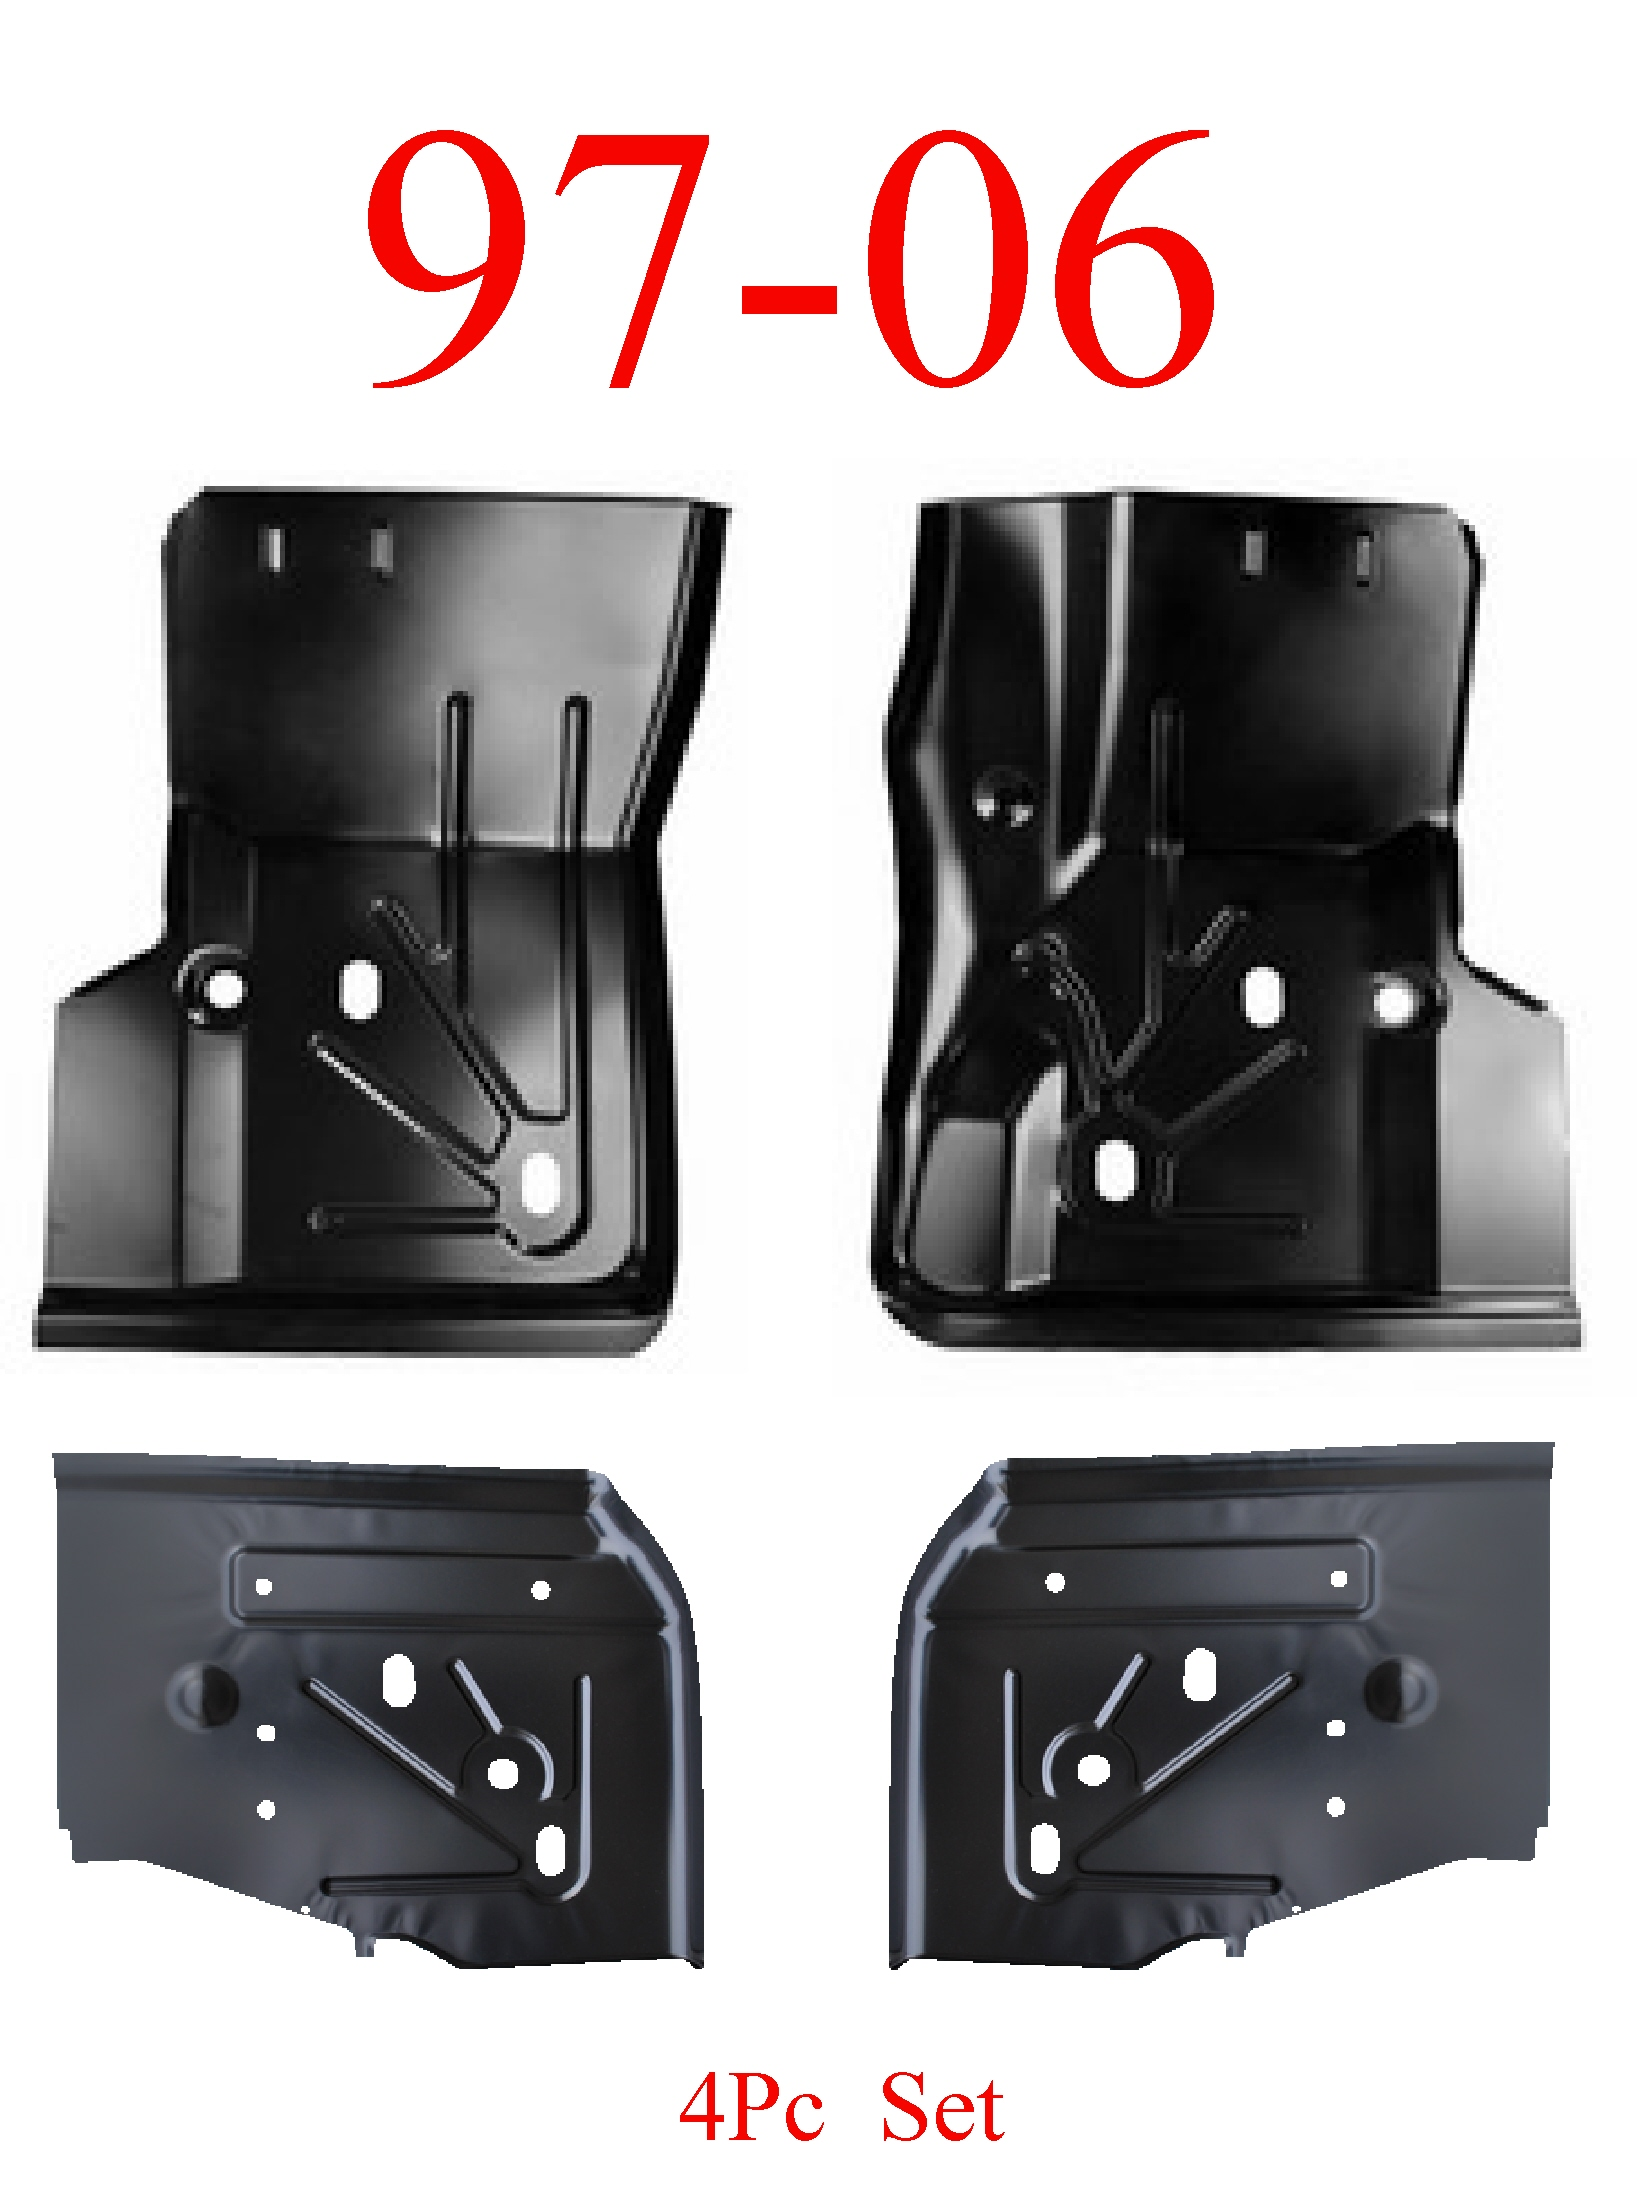 97-06 Jeep Wrangler TJ 4Pc Front & Rear Floor Pan Kit